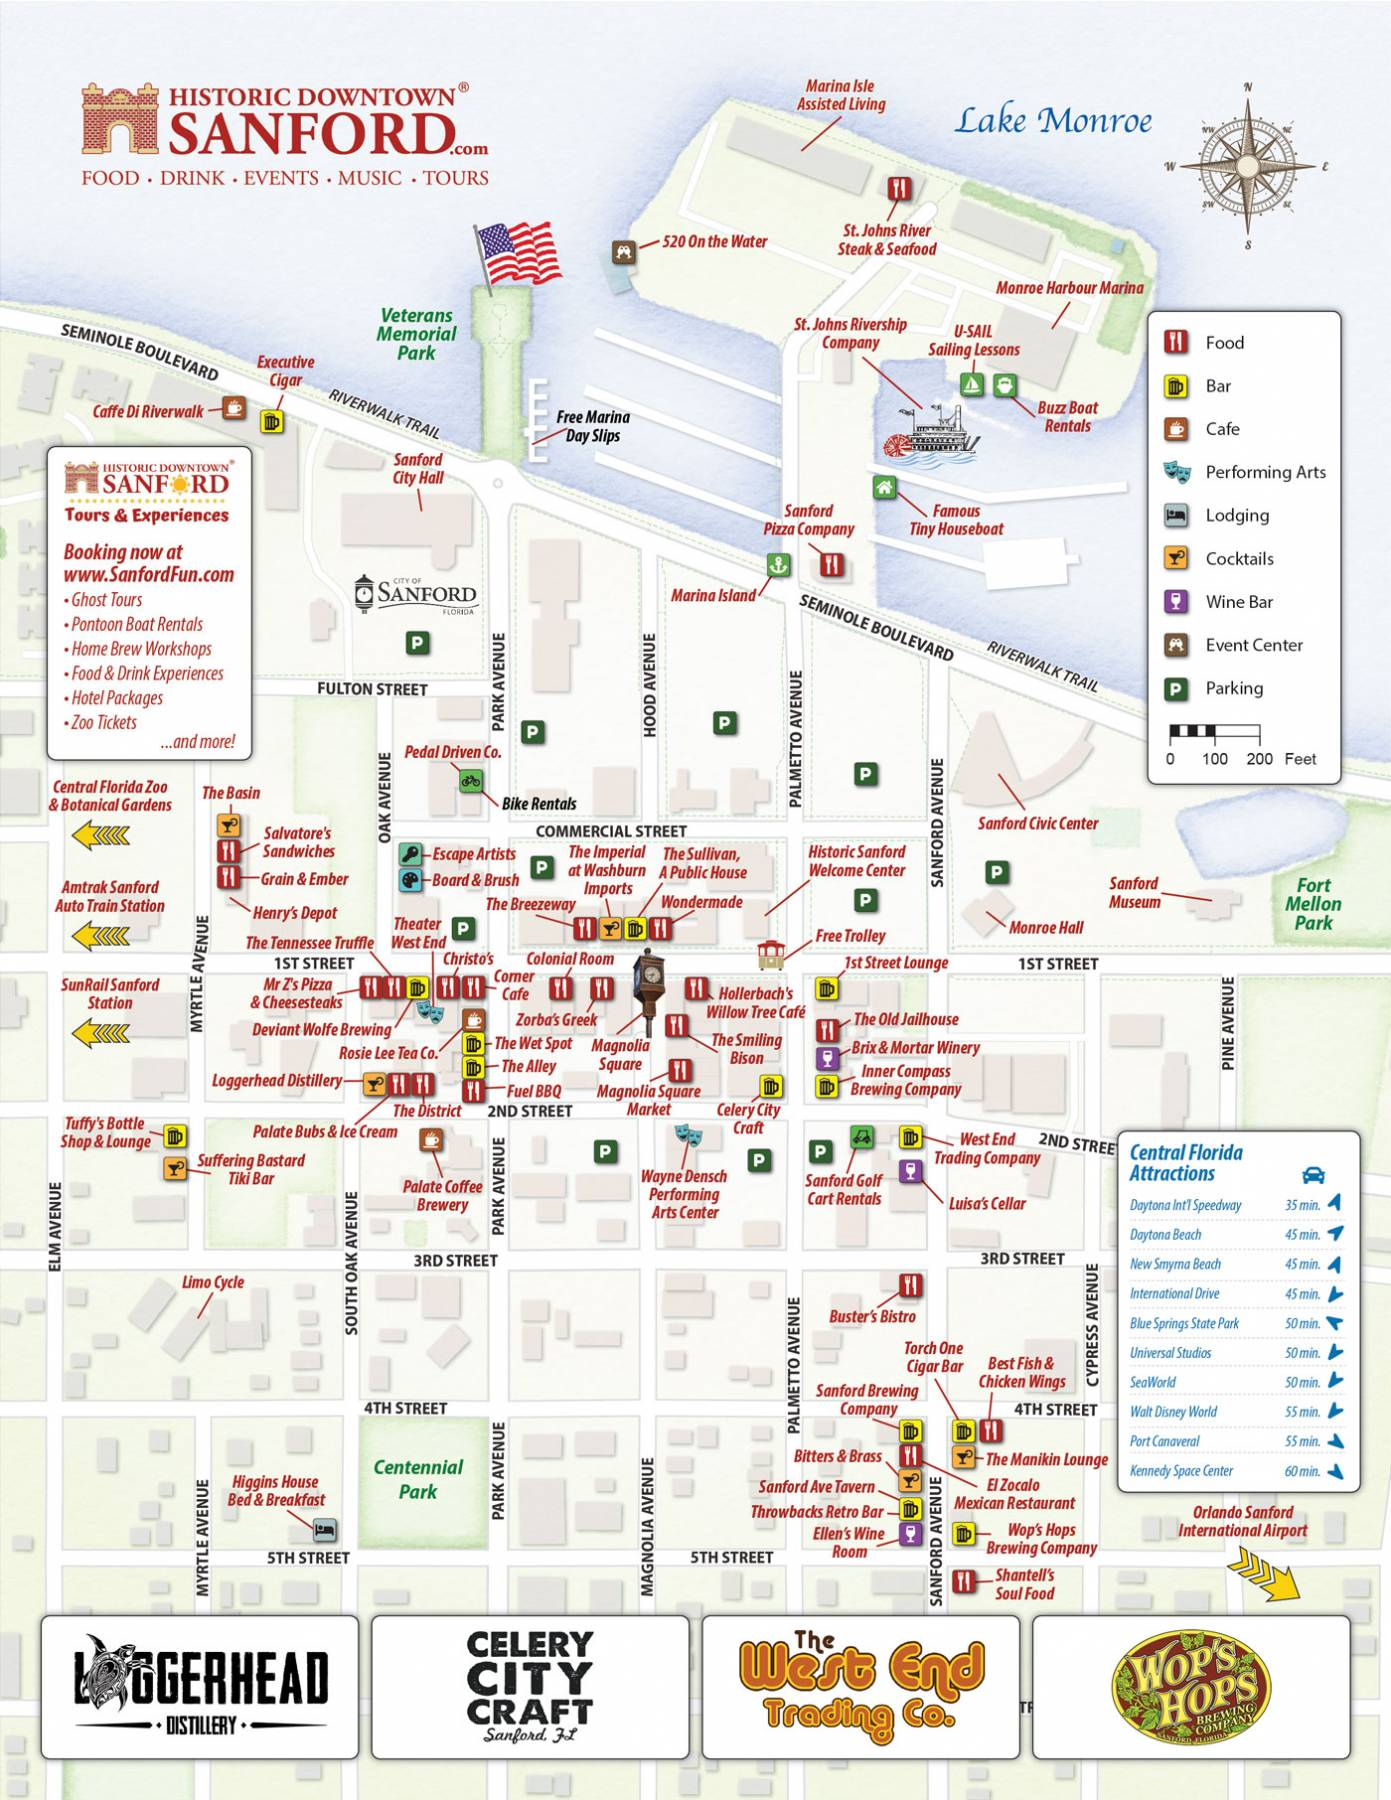 Parking Map of Historic Downtown Sanford